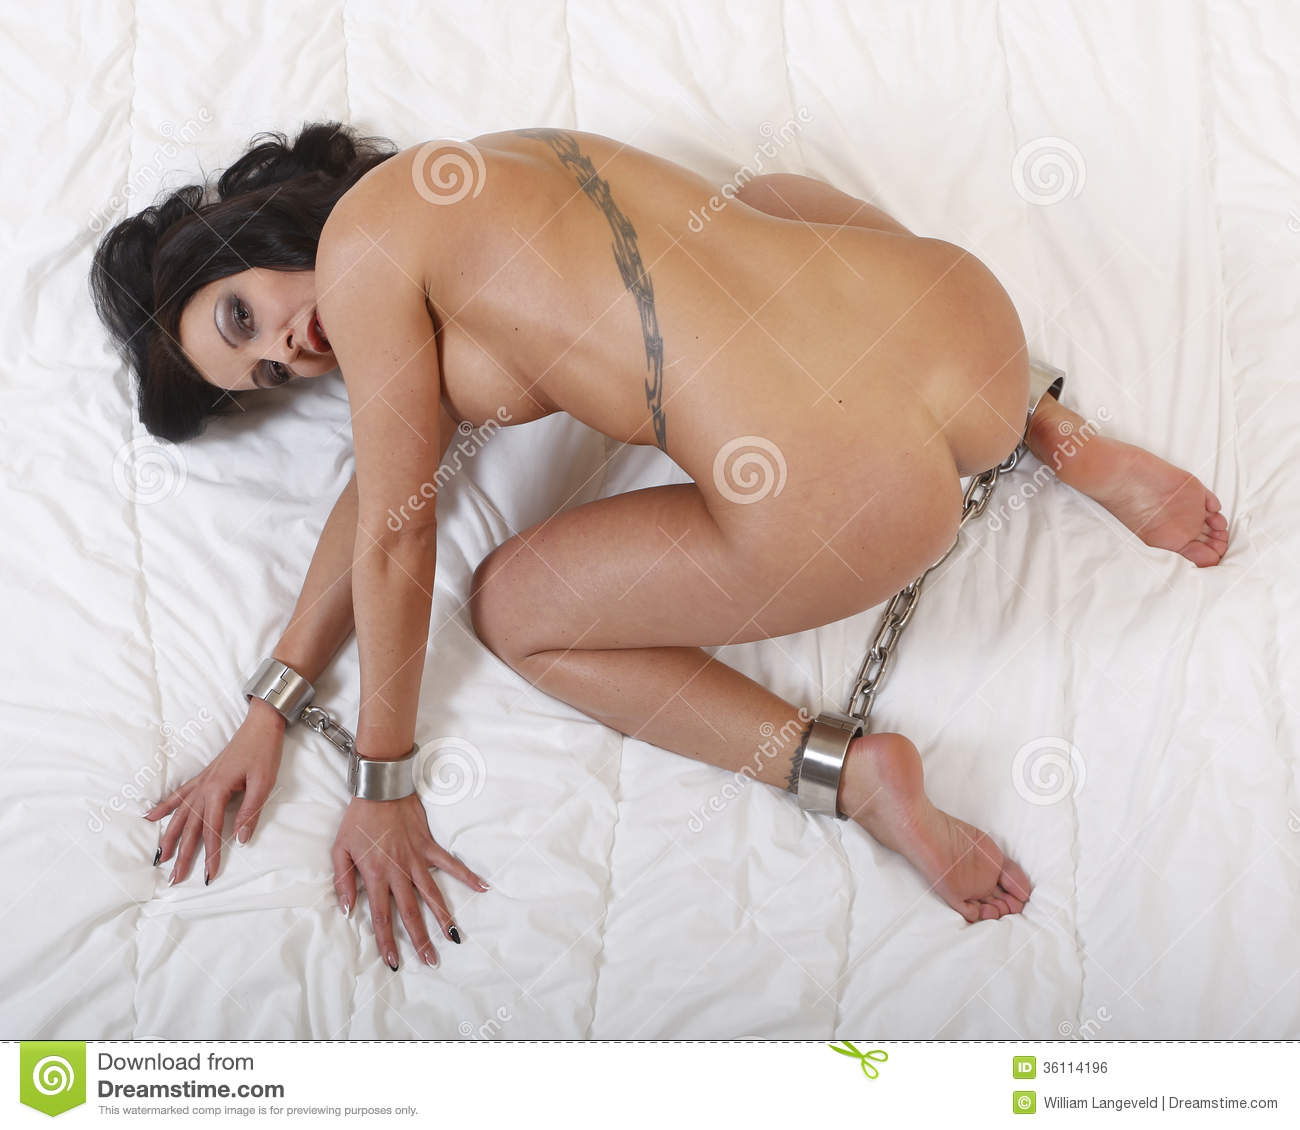 Beautful Nude Or Naked Woman Handcuffed Stock Photo -4881